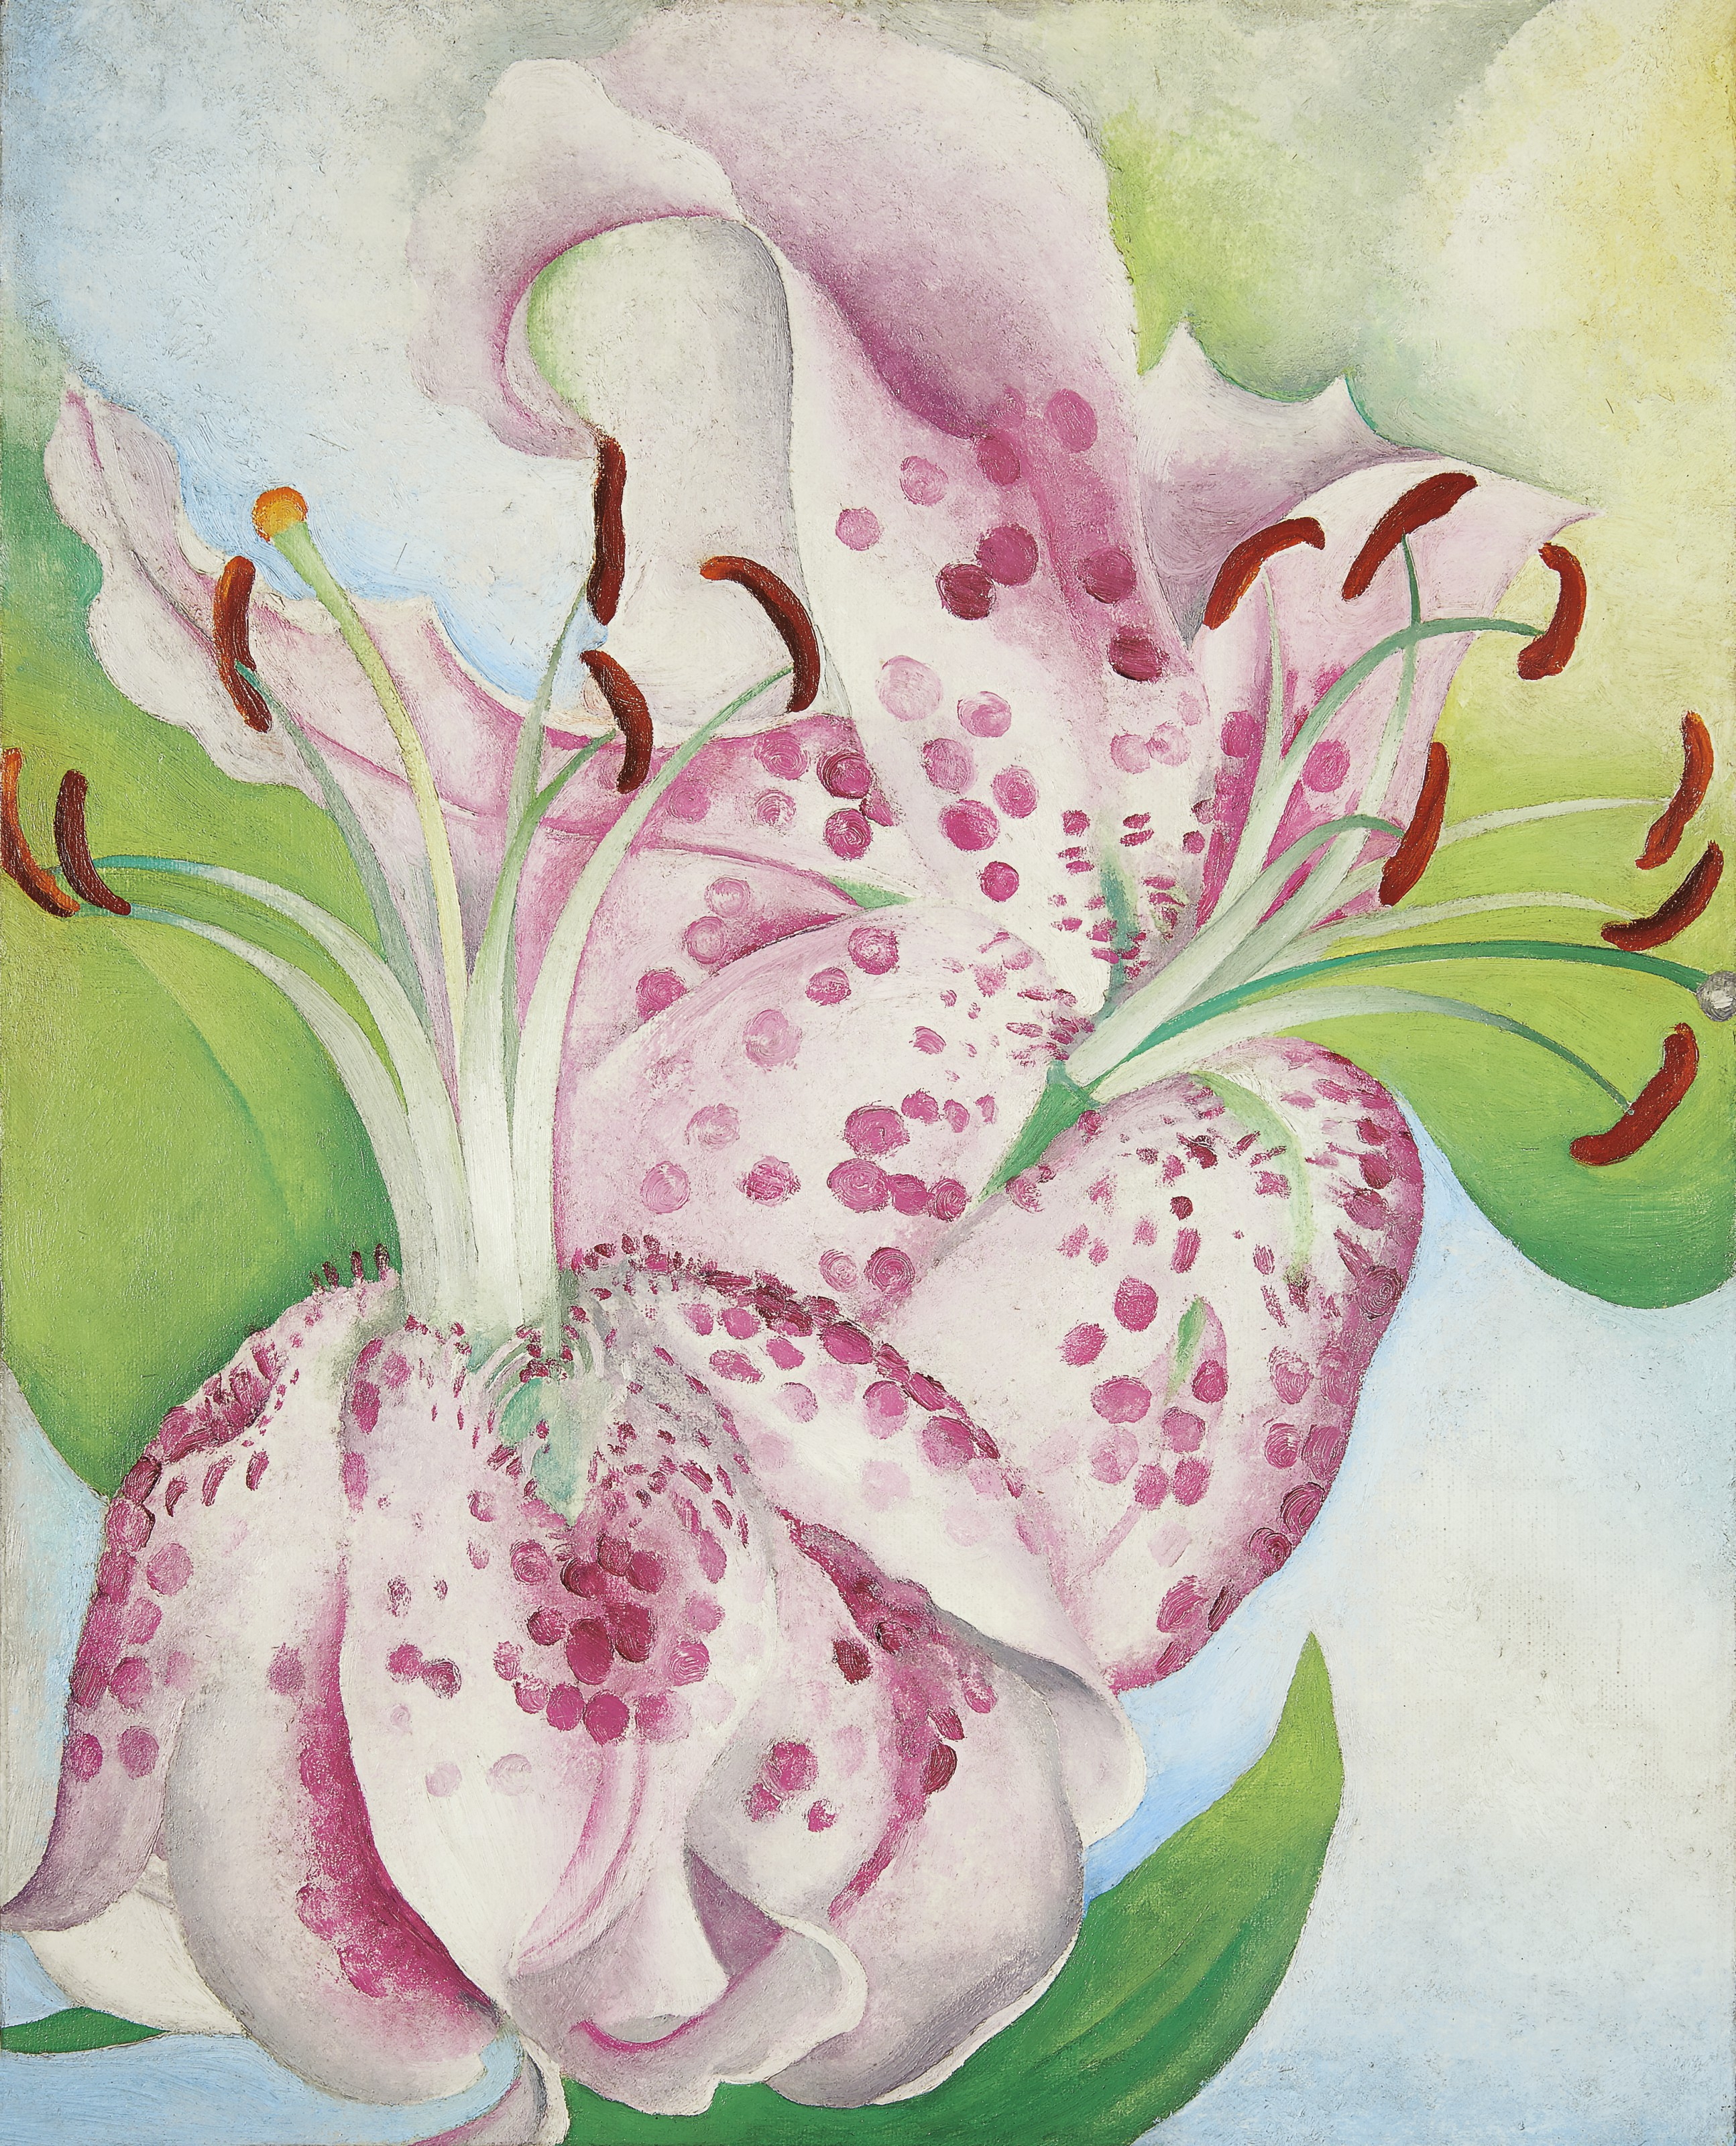 Georgia O'Keeffe (1887-1986) | Pink Spotted Lillies | 1930s, Paintings |  Christie's